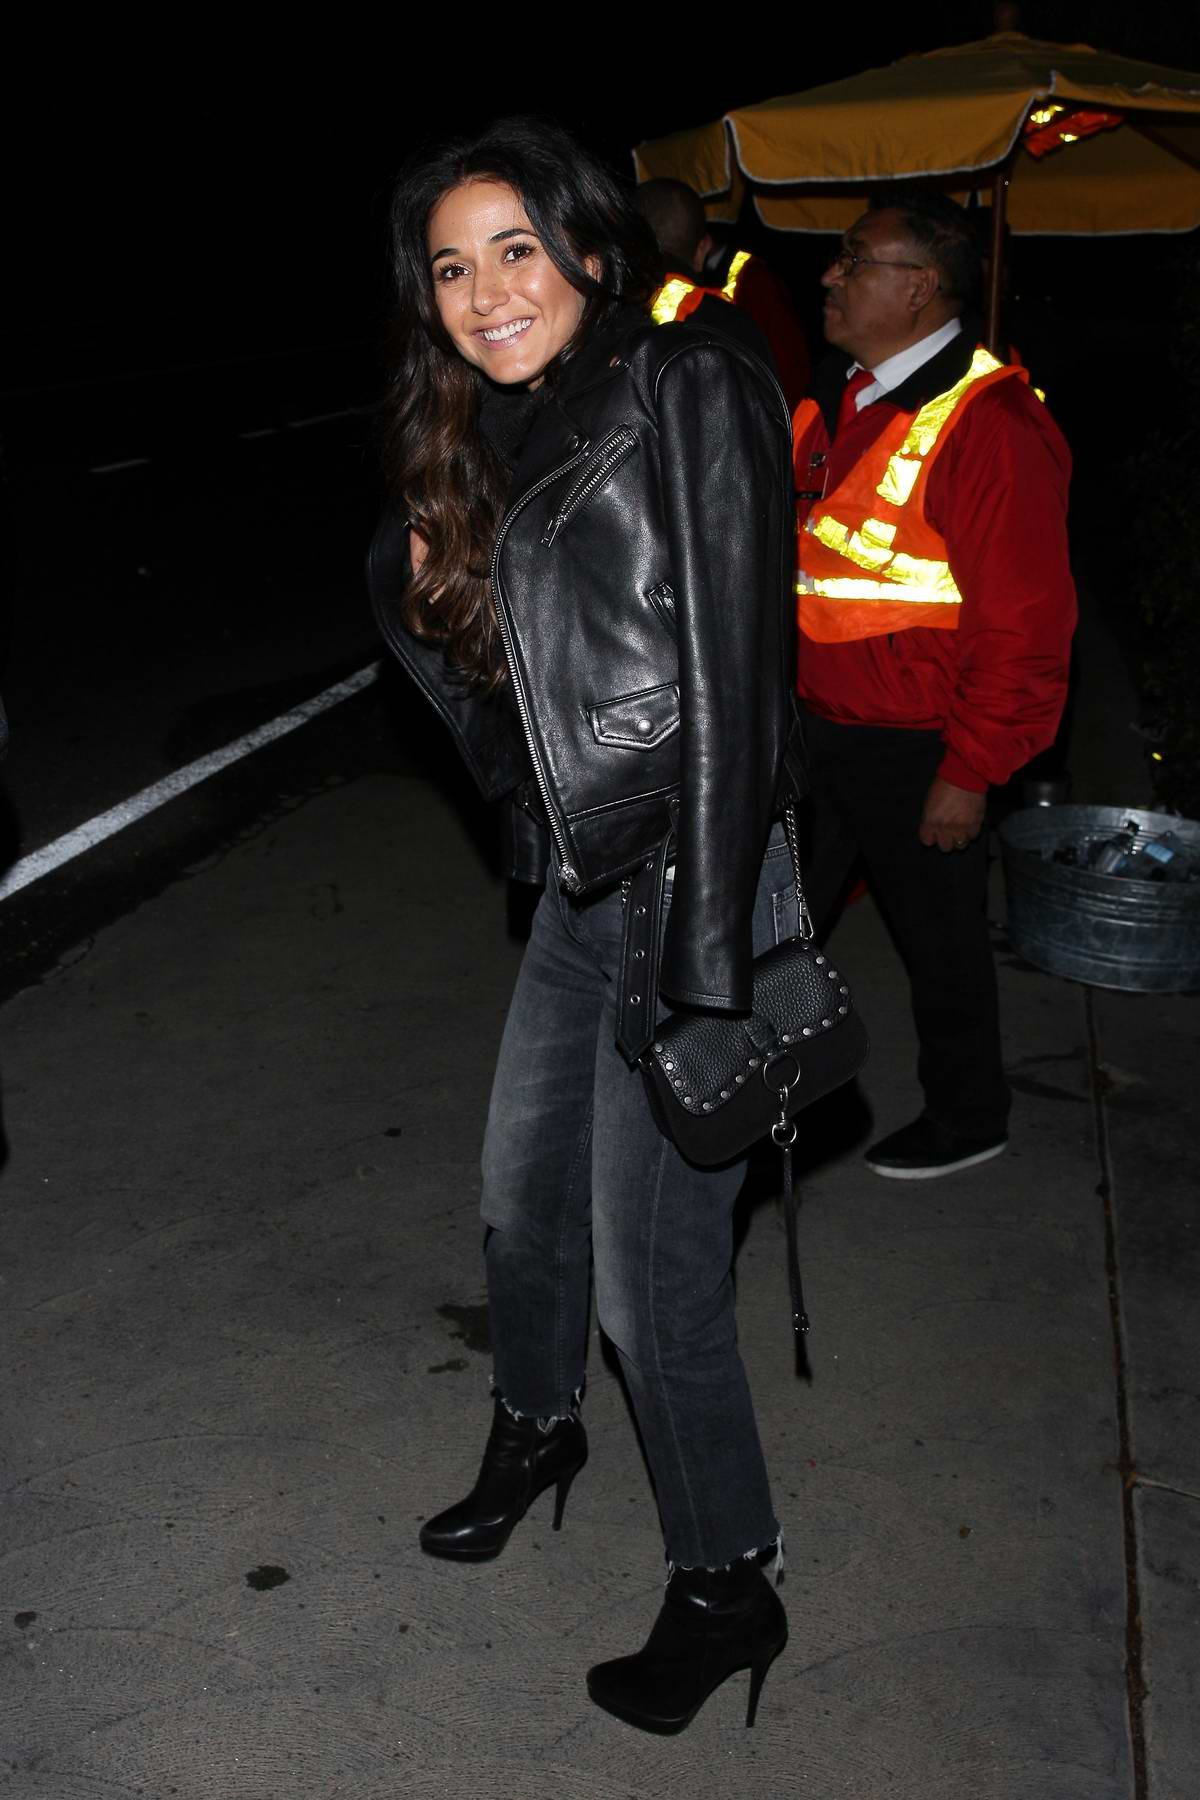 Emmanuelle Chriqui rocks a black leather jacket as she leaves a house party in Los Angeles